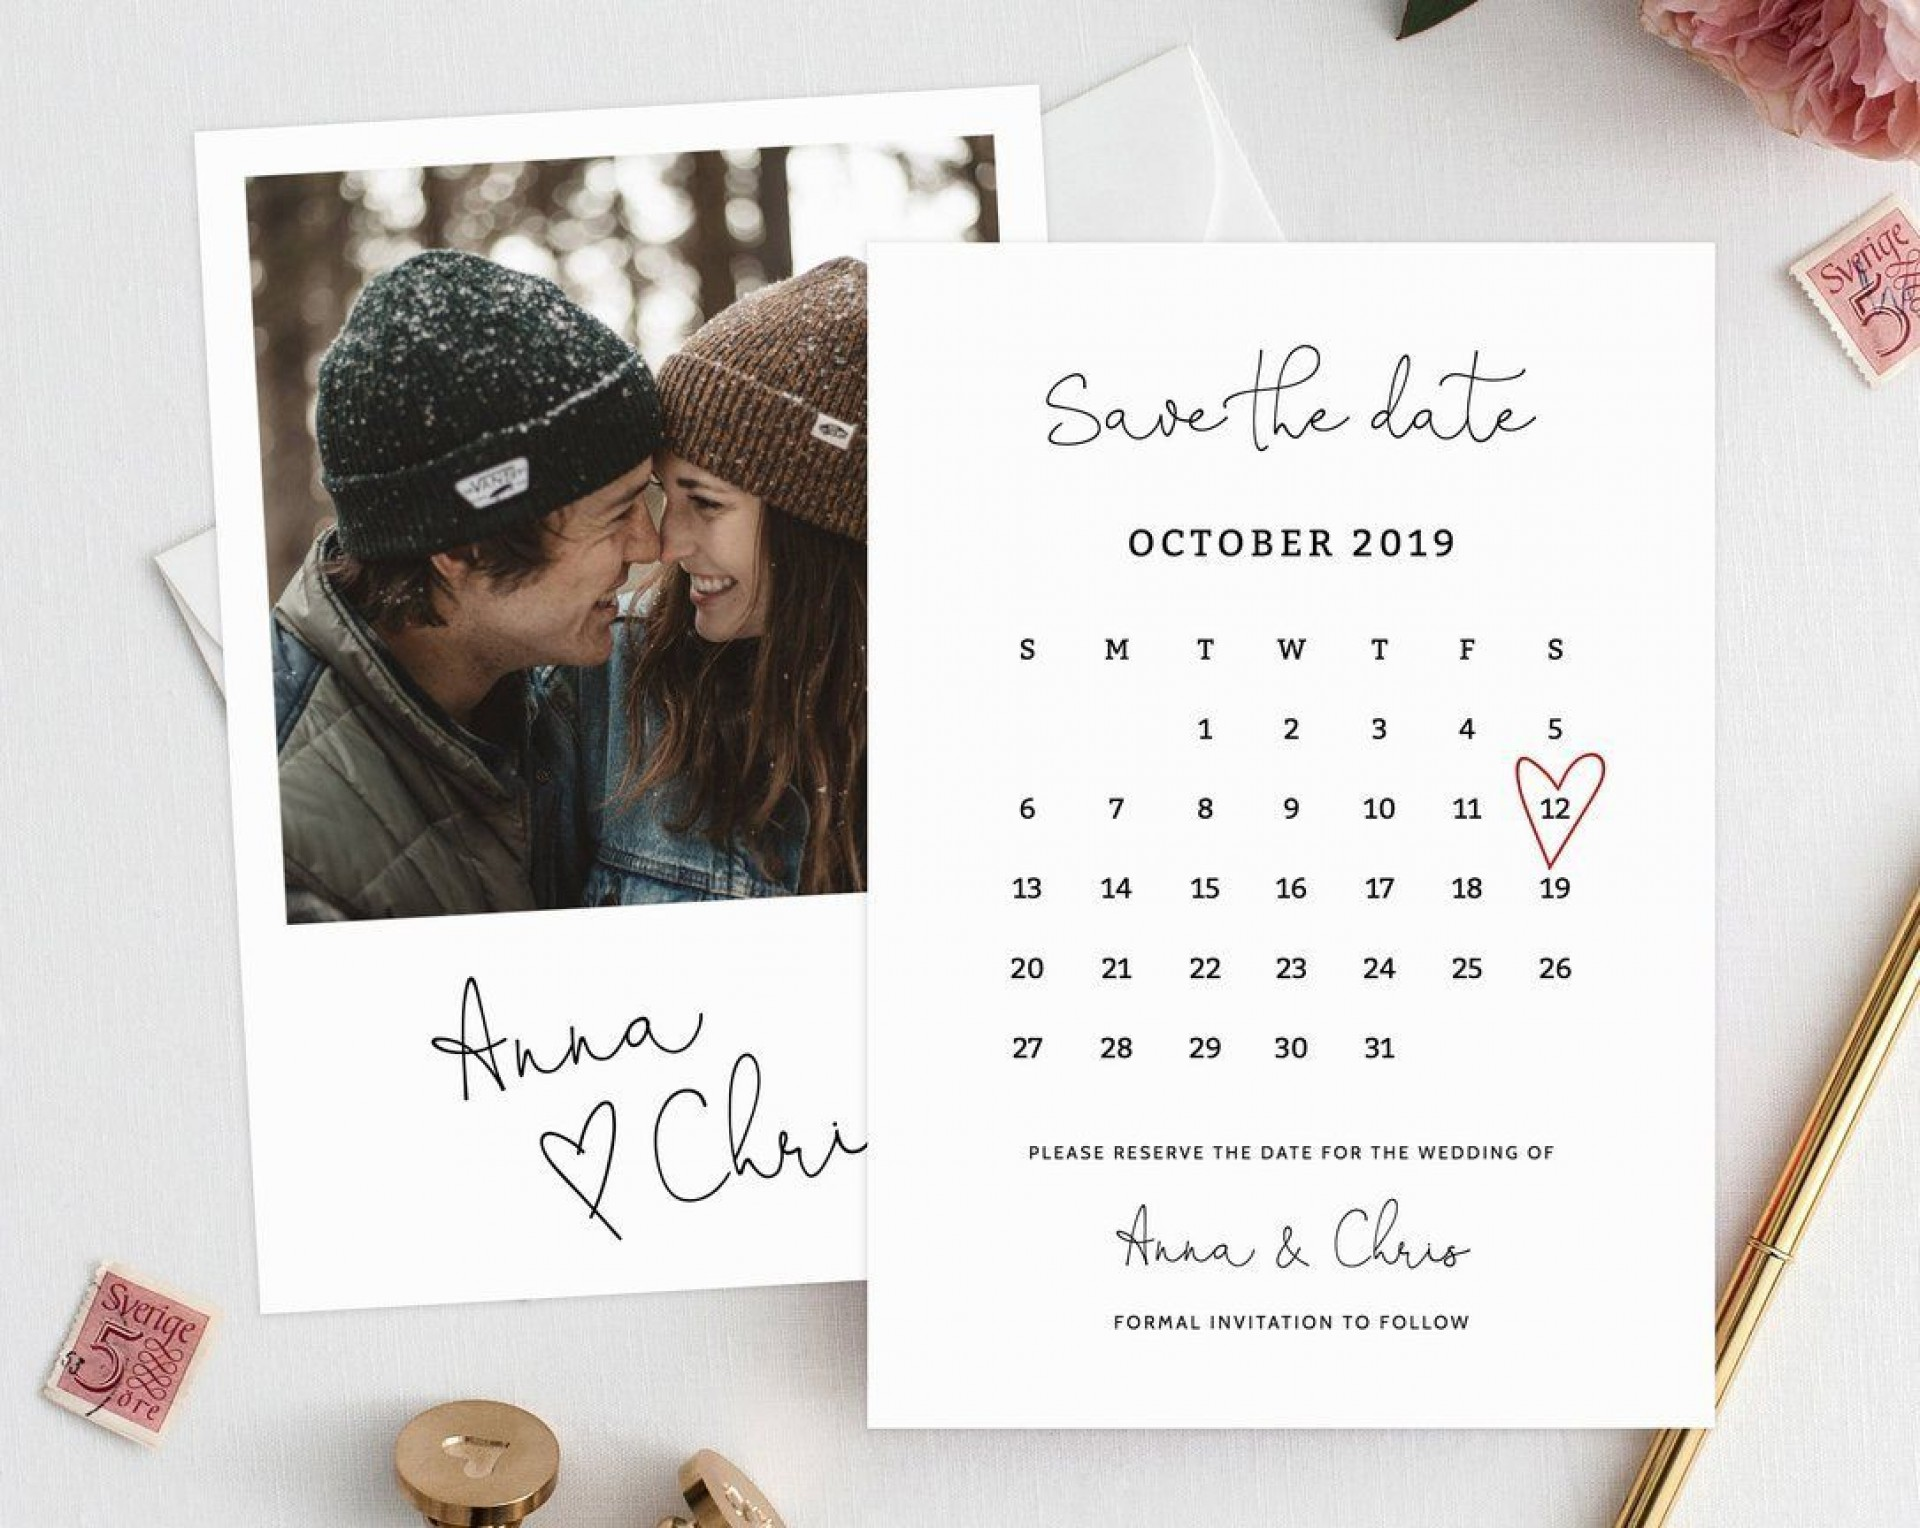 005 Wondrou Free Save The Date Birthday Postcard Template Highest Quality 1920